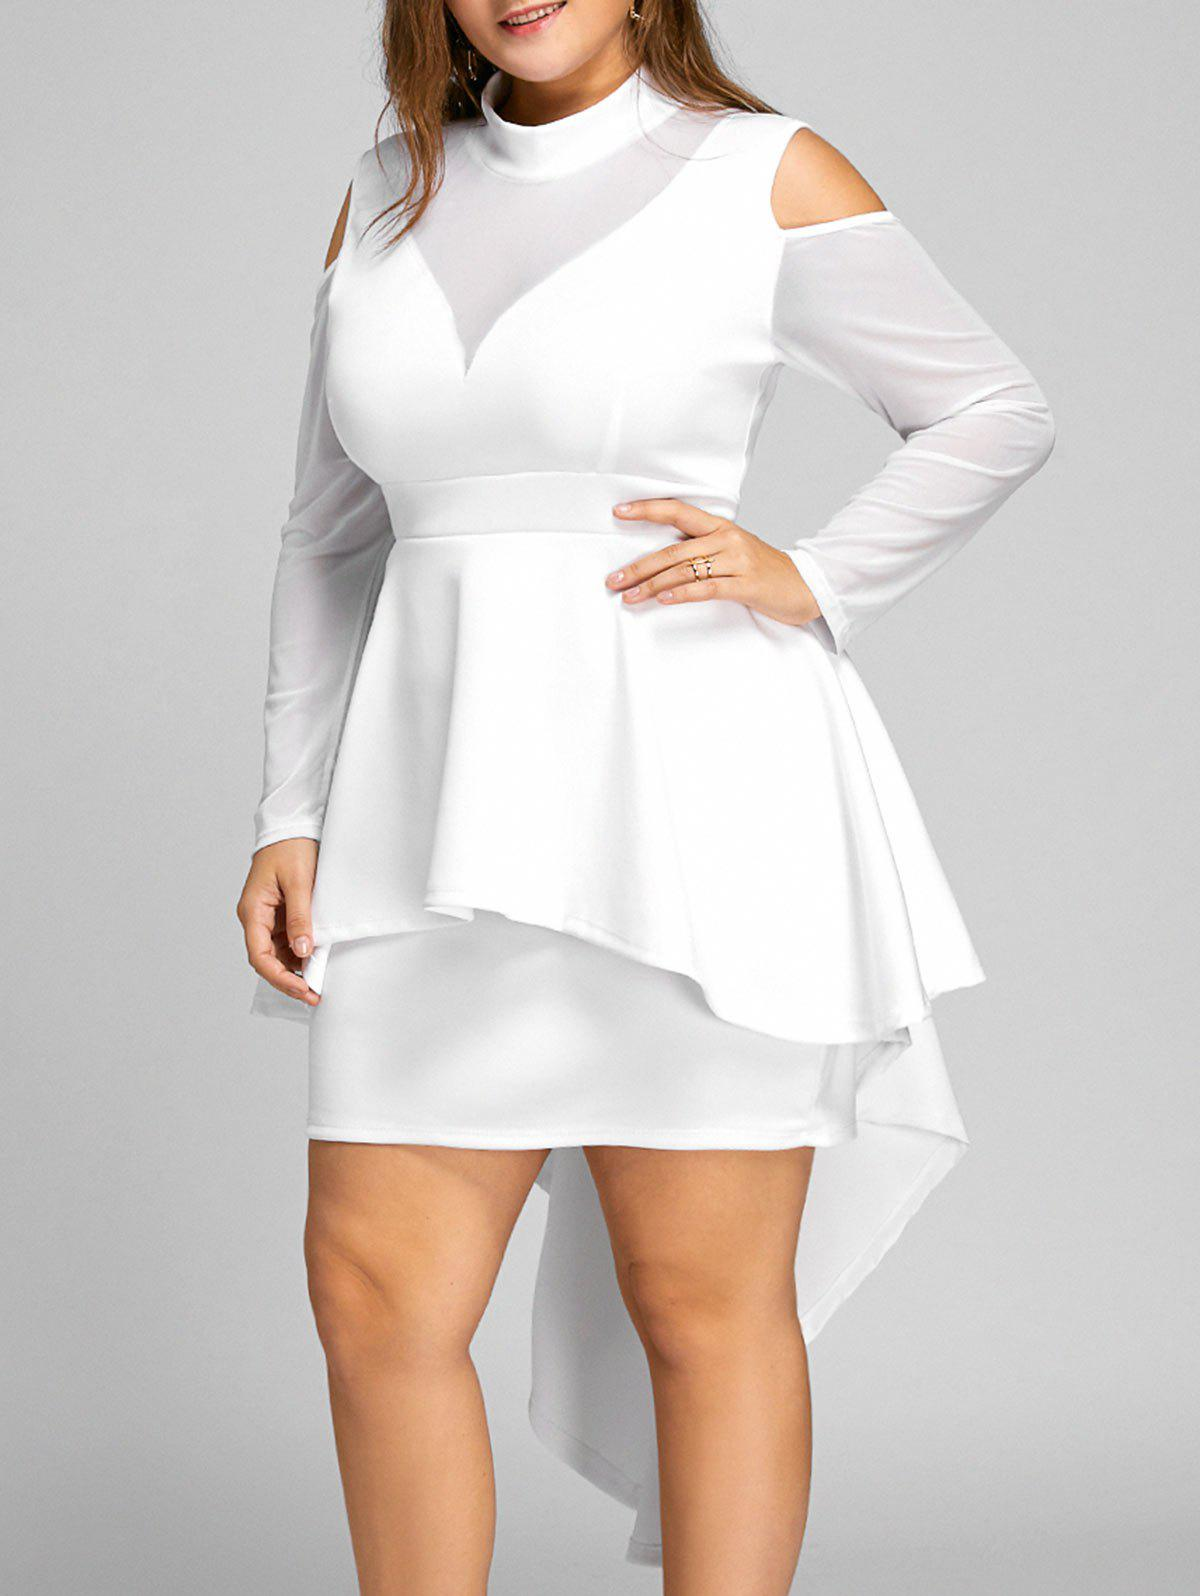 Plus Size High Low Mesh Panel Bodycon DressWOMEN<br><br>Size: 2XL; Color: WHITE; Style: Casual; Material: Cotton,Polyester; Silhouette: Bodycon; Dresses Length: Mid-Calf; Neckline: High Neck; Sleeve Length: Long Sleeves; Pattern Type: Solid; With Belt: No; Season: Fall; Weight: 0.6950kg; Package Contents: 1 x Dress;